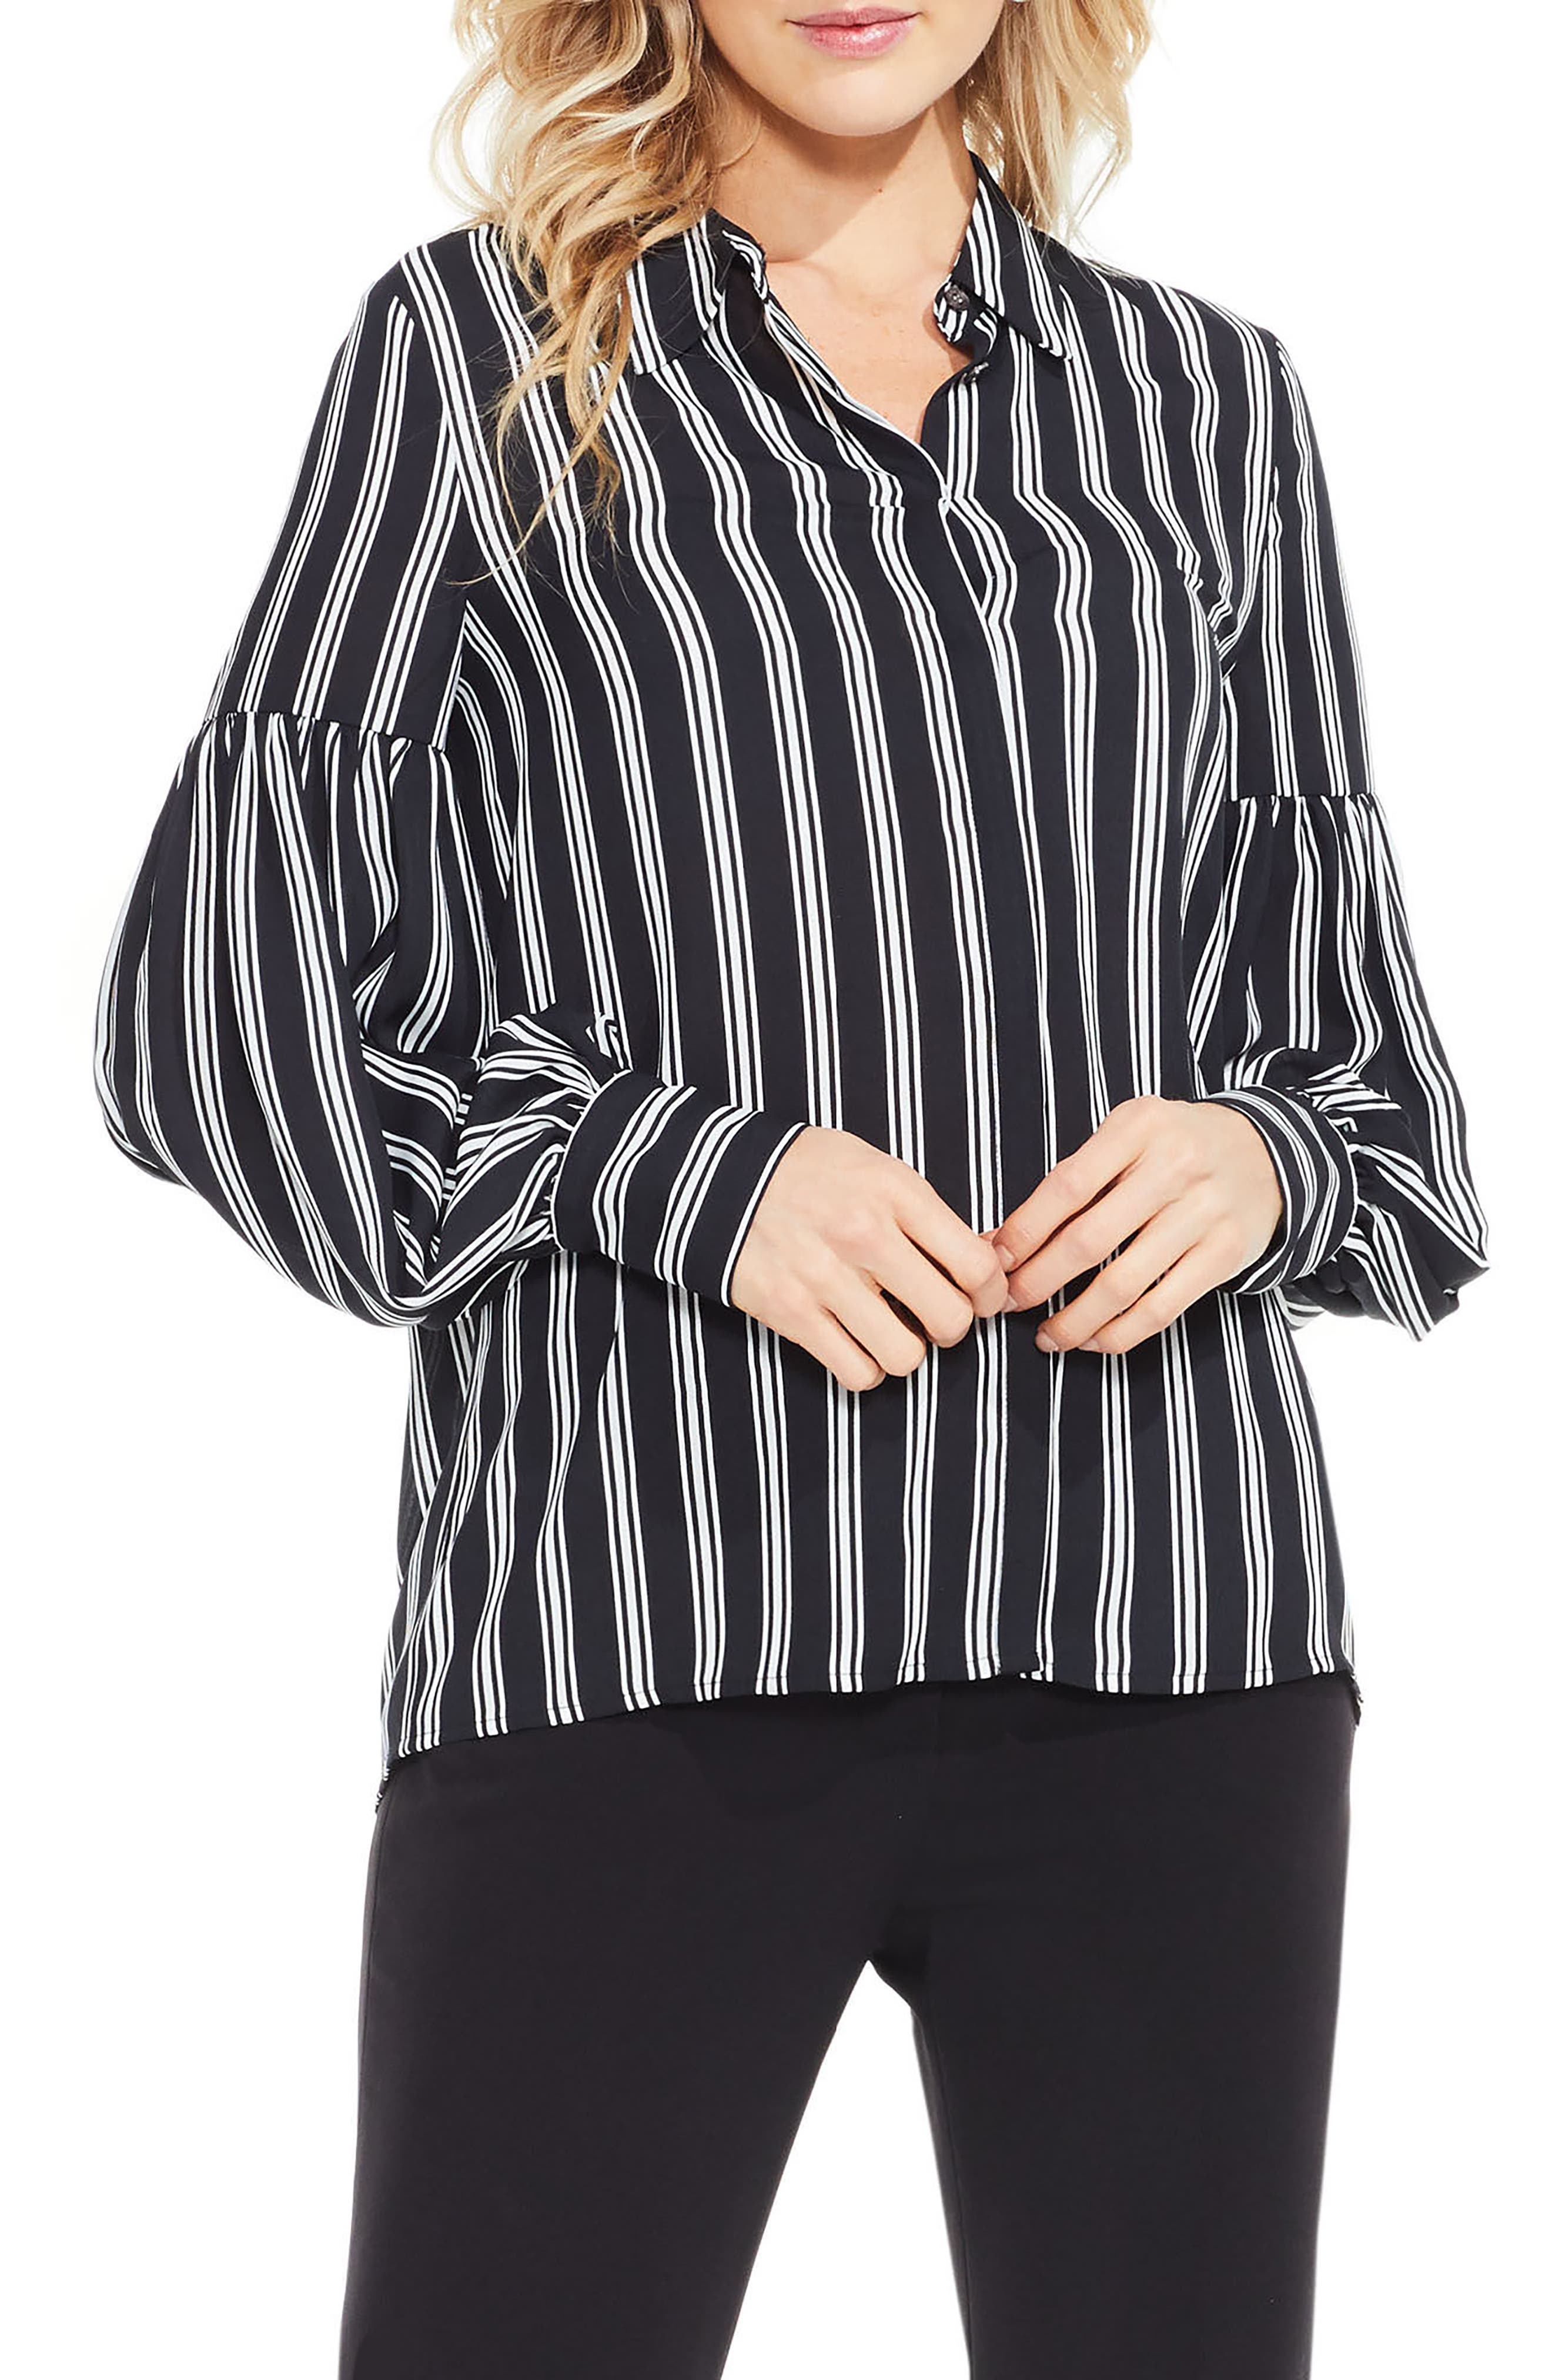 Alternate Image 1 Selected - Vince Camuto Stripe Puff Sleeve Blouse